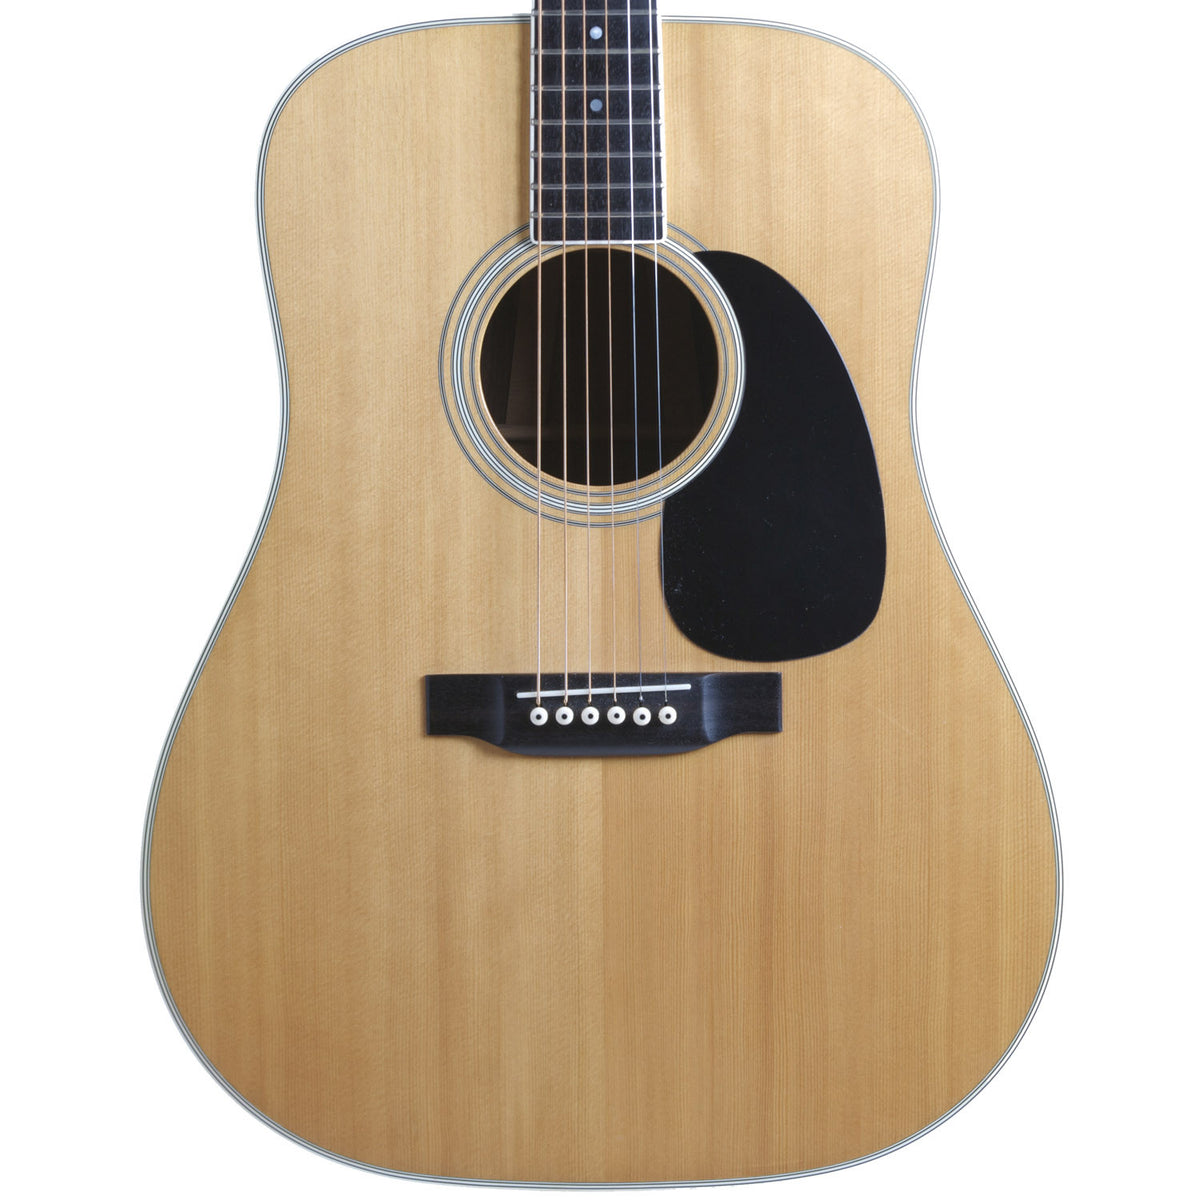 1971 Martin D-35 Natural - Garrett Park Guitars  - 2